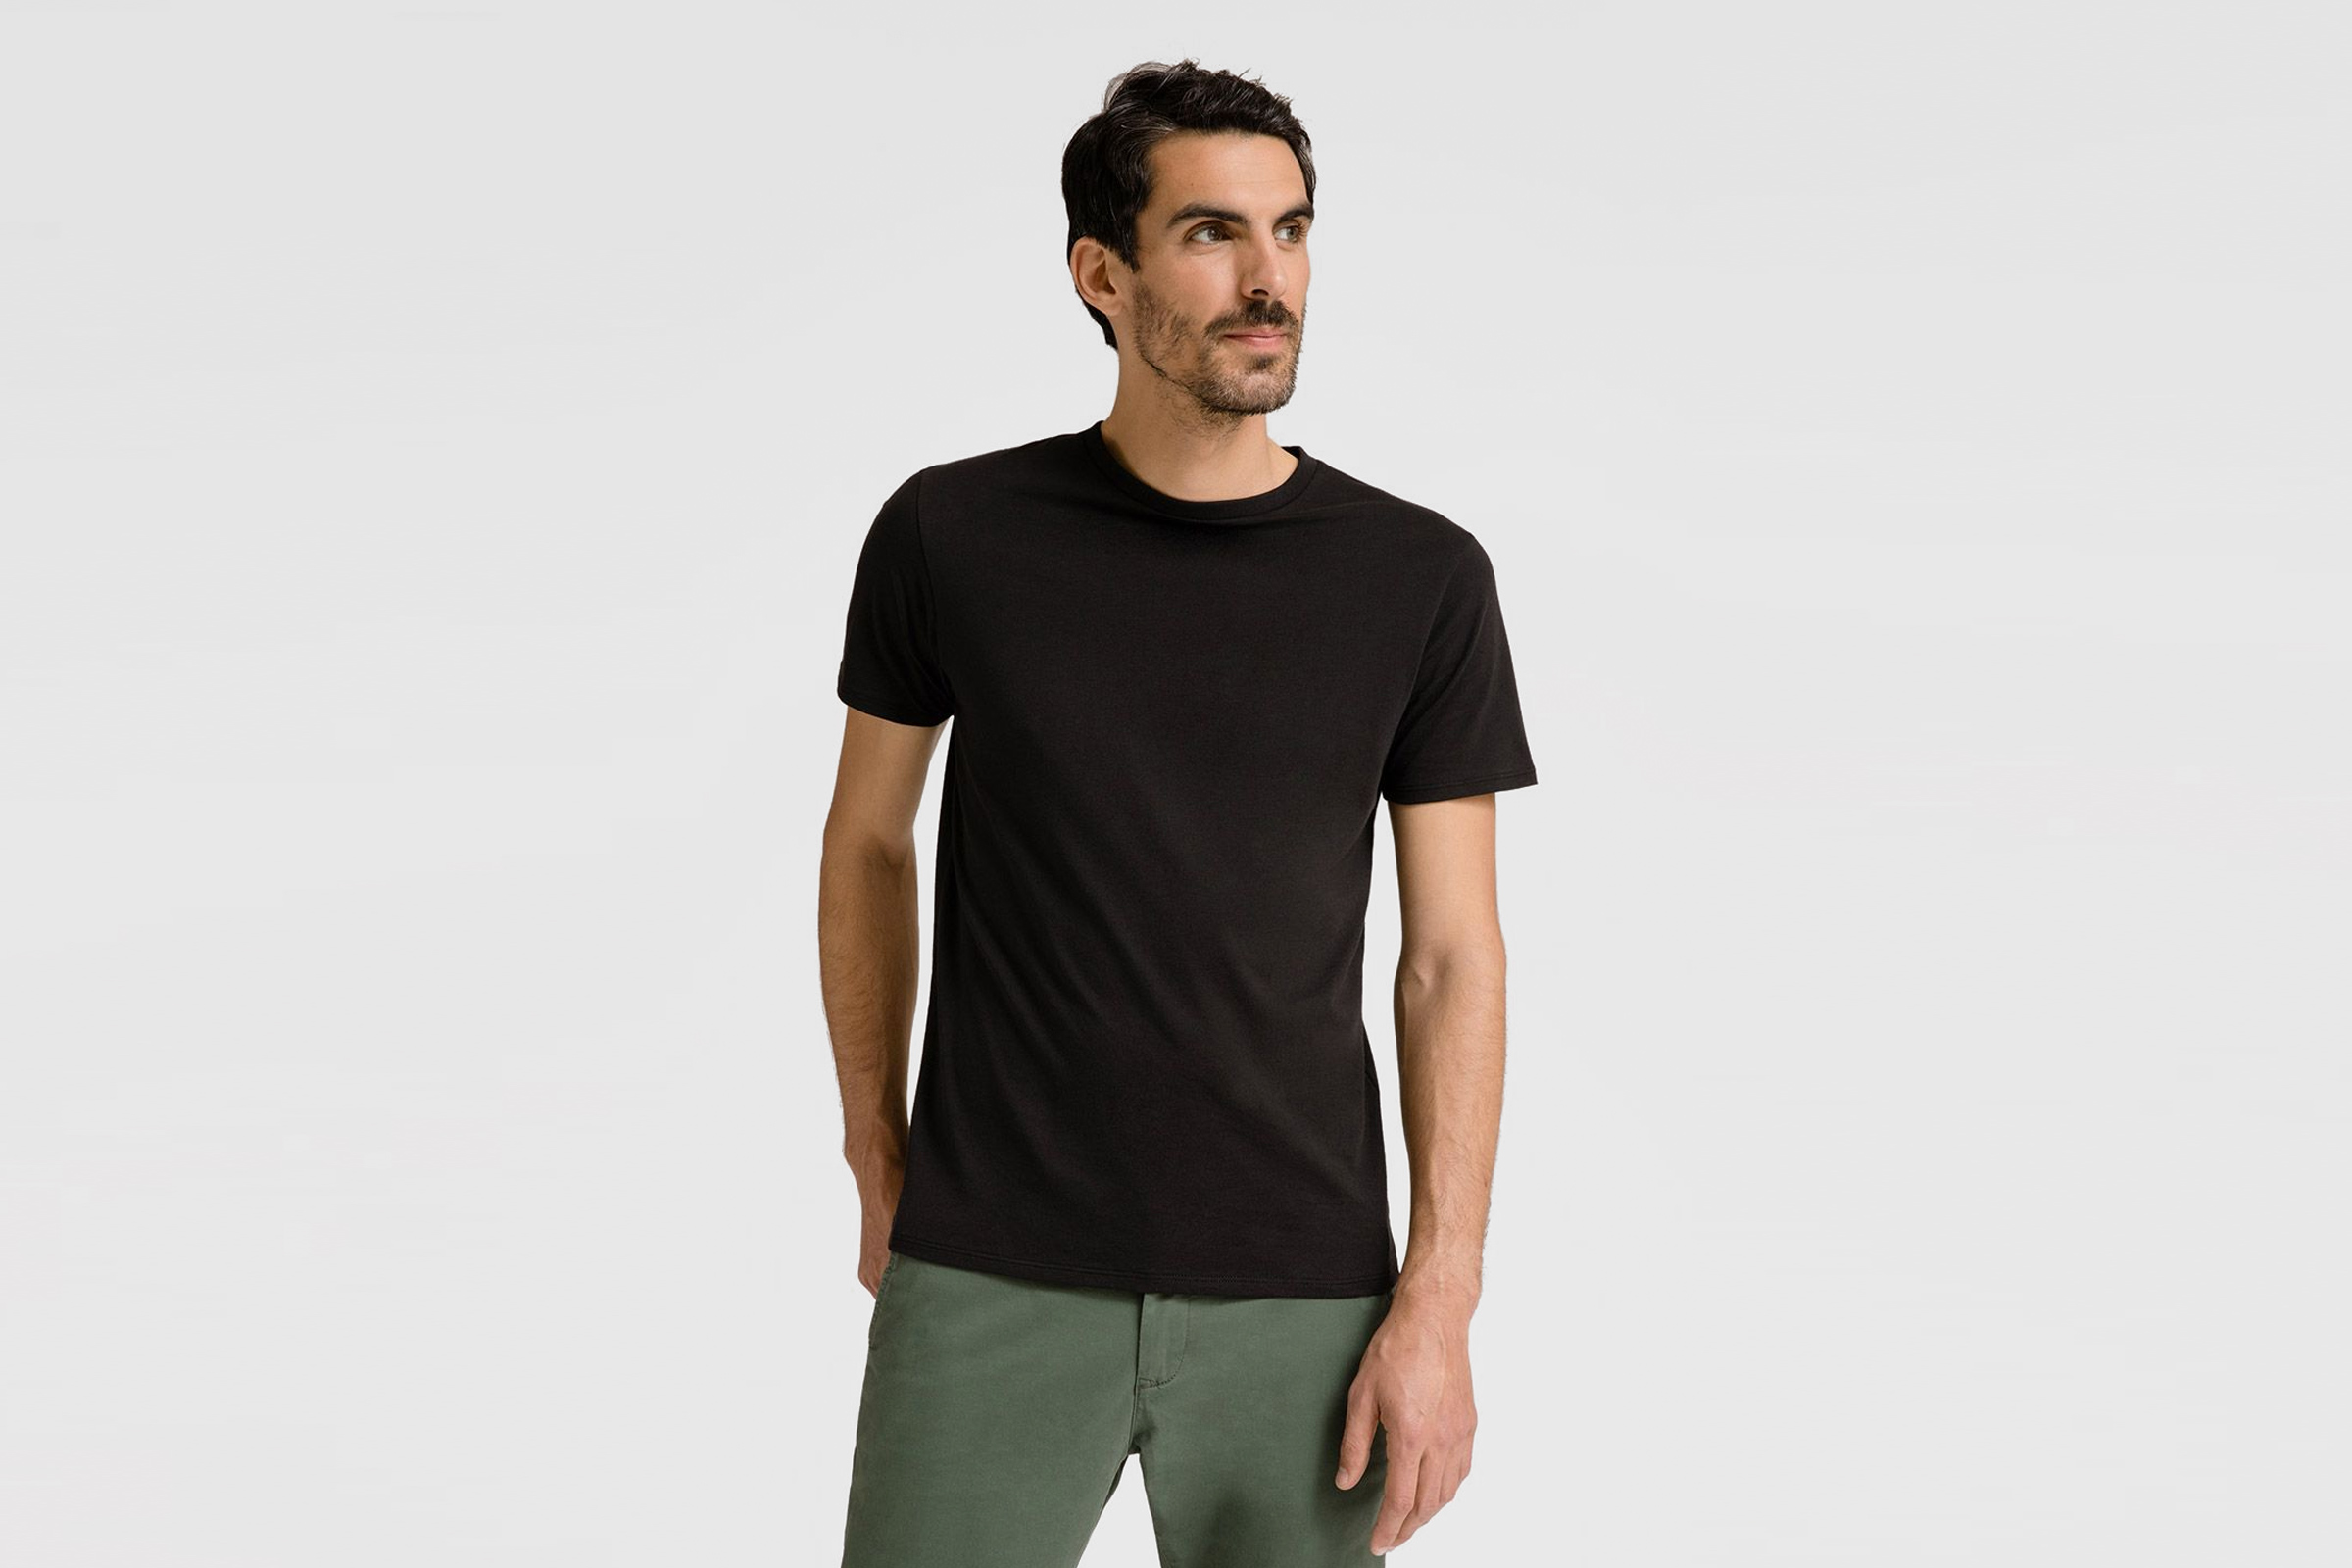 Men's Basic Tees GRANA